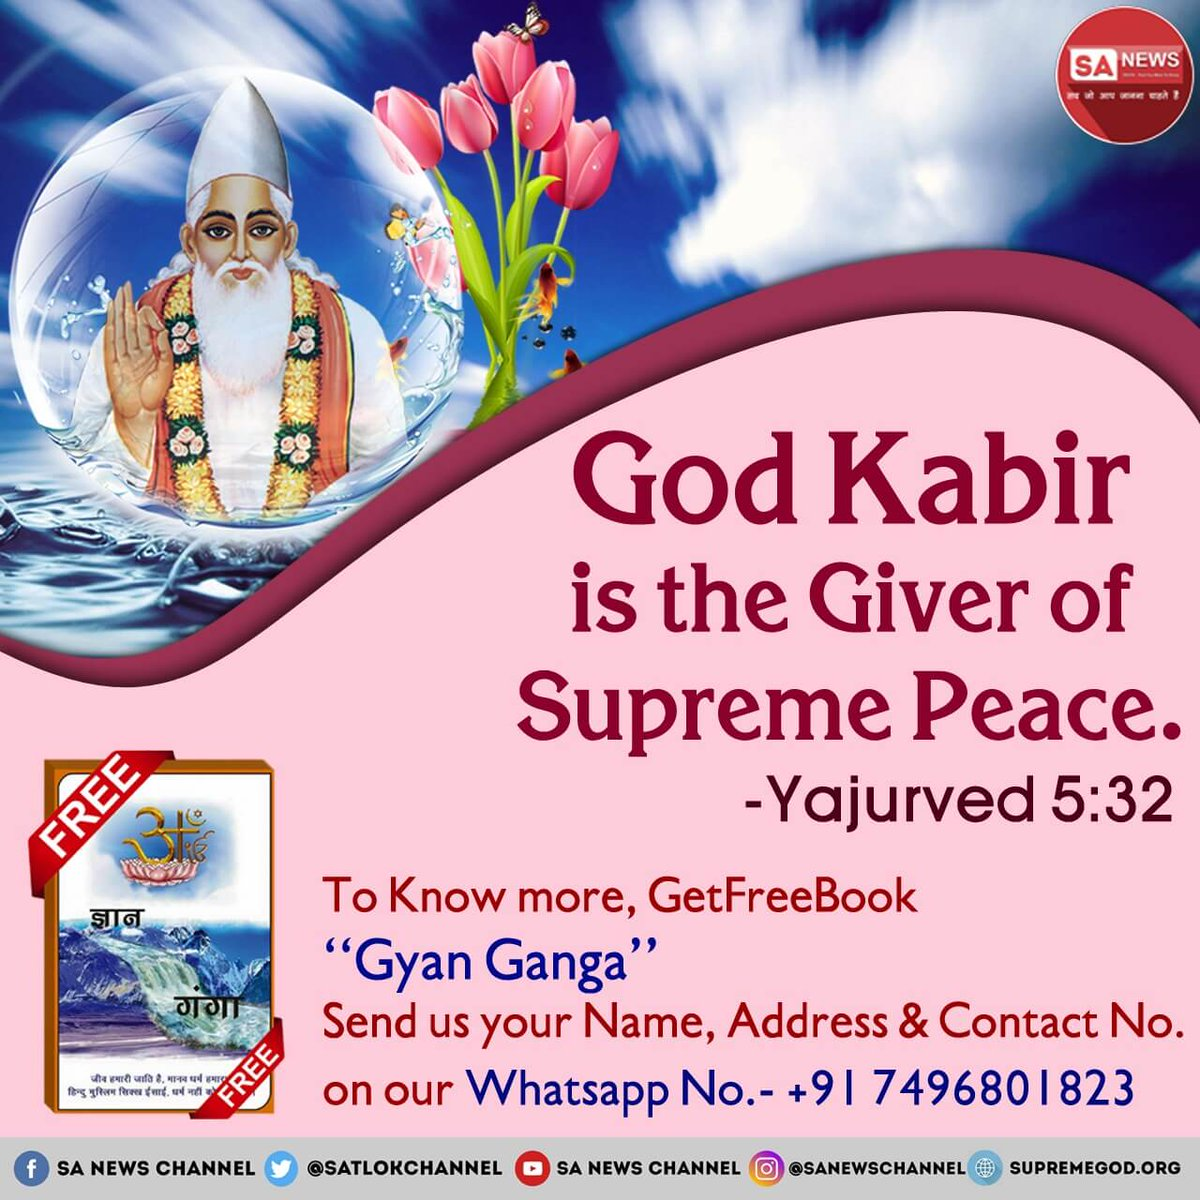 #MustListen_Satsang Satlok is the eternal place of eternal God Kabir Until we go to SATLOK, we cannot attain SUPREME peace, happiness and immorality.  Must watch sadhna TV 7:30 pm